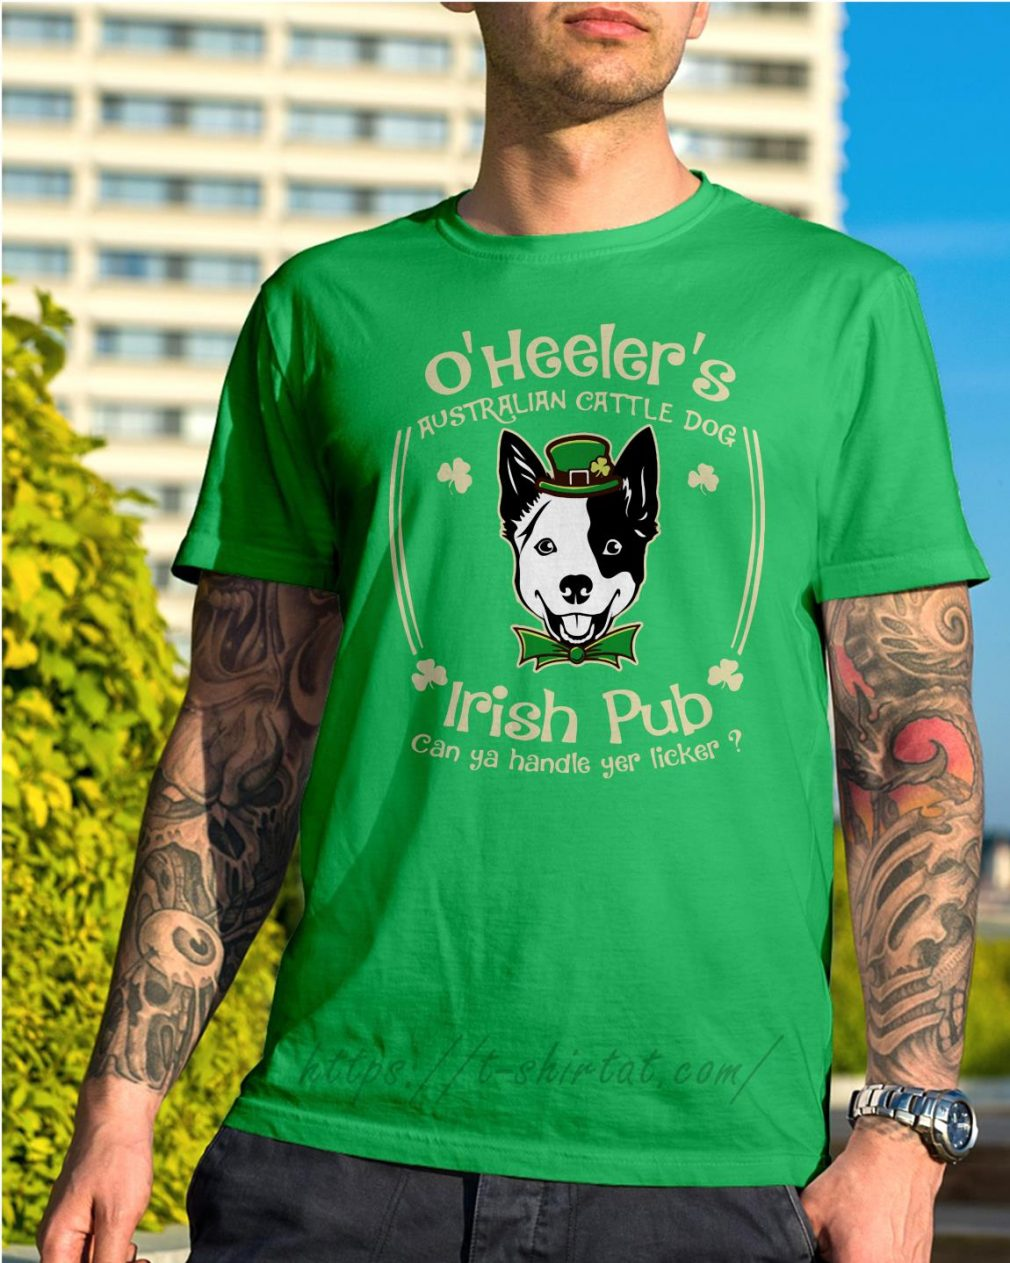 St Patrick's day O' Heelers Australian cattle dog Irish Pub Shirt green